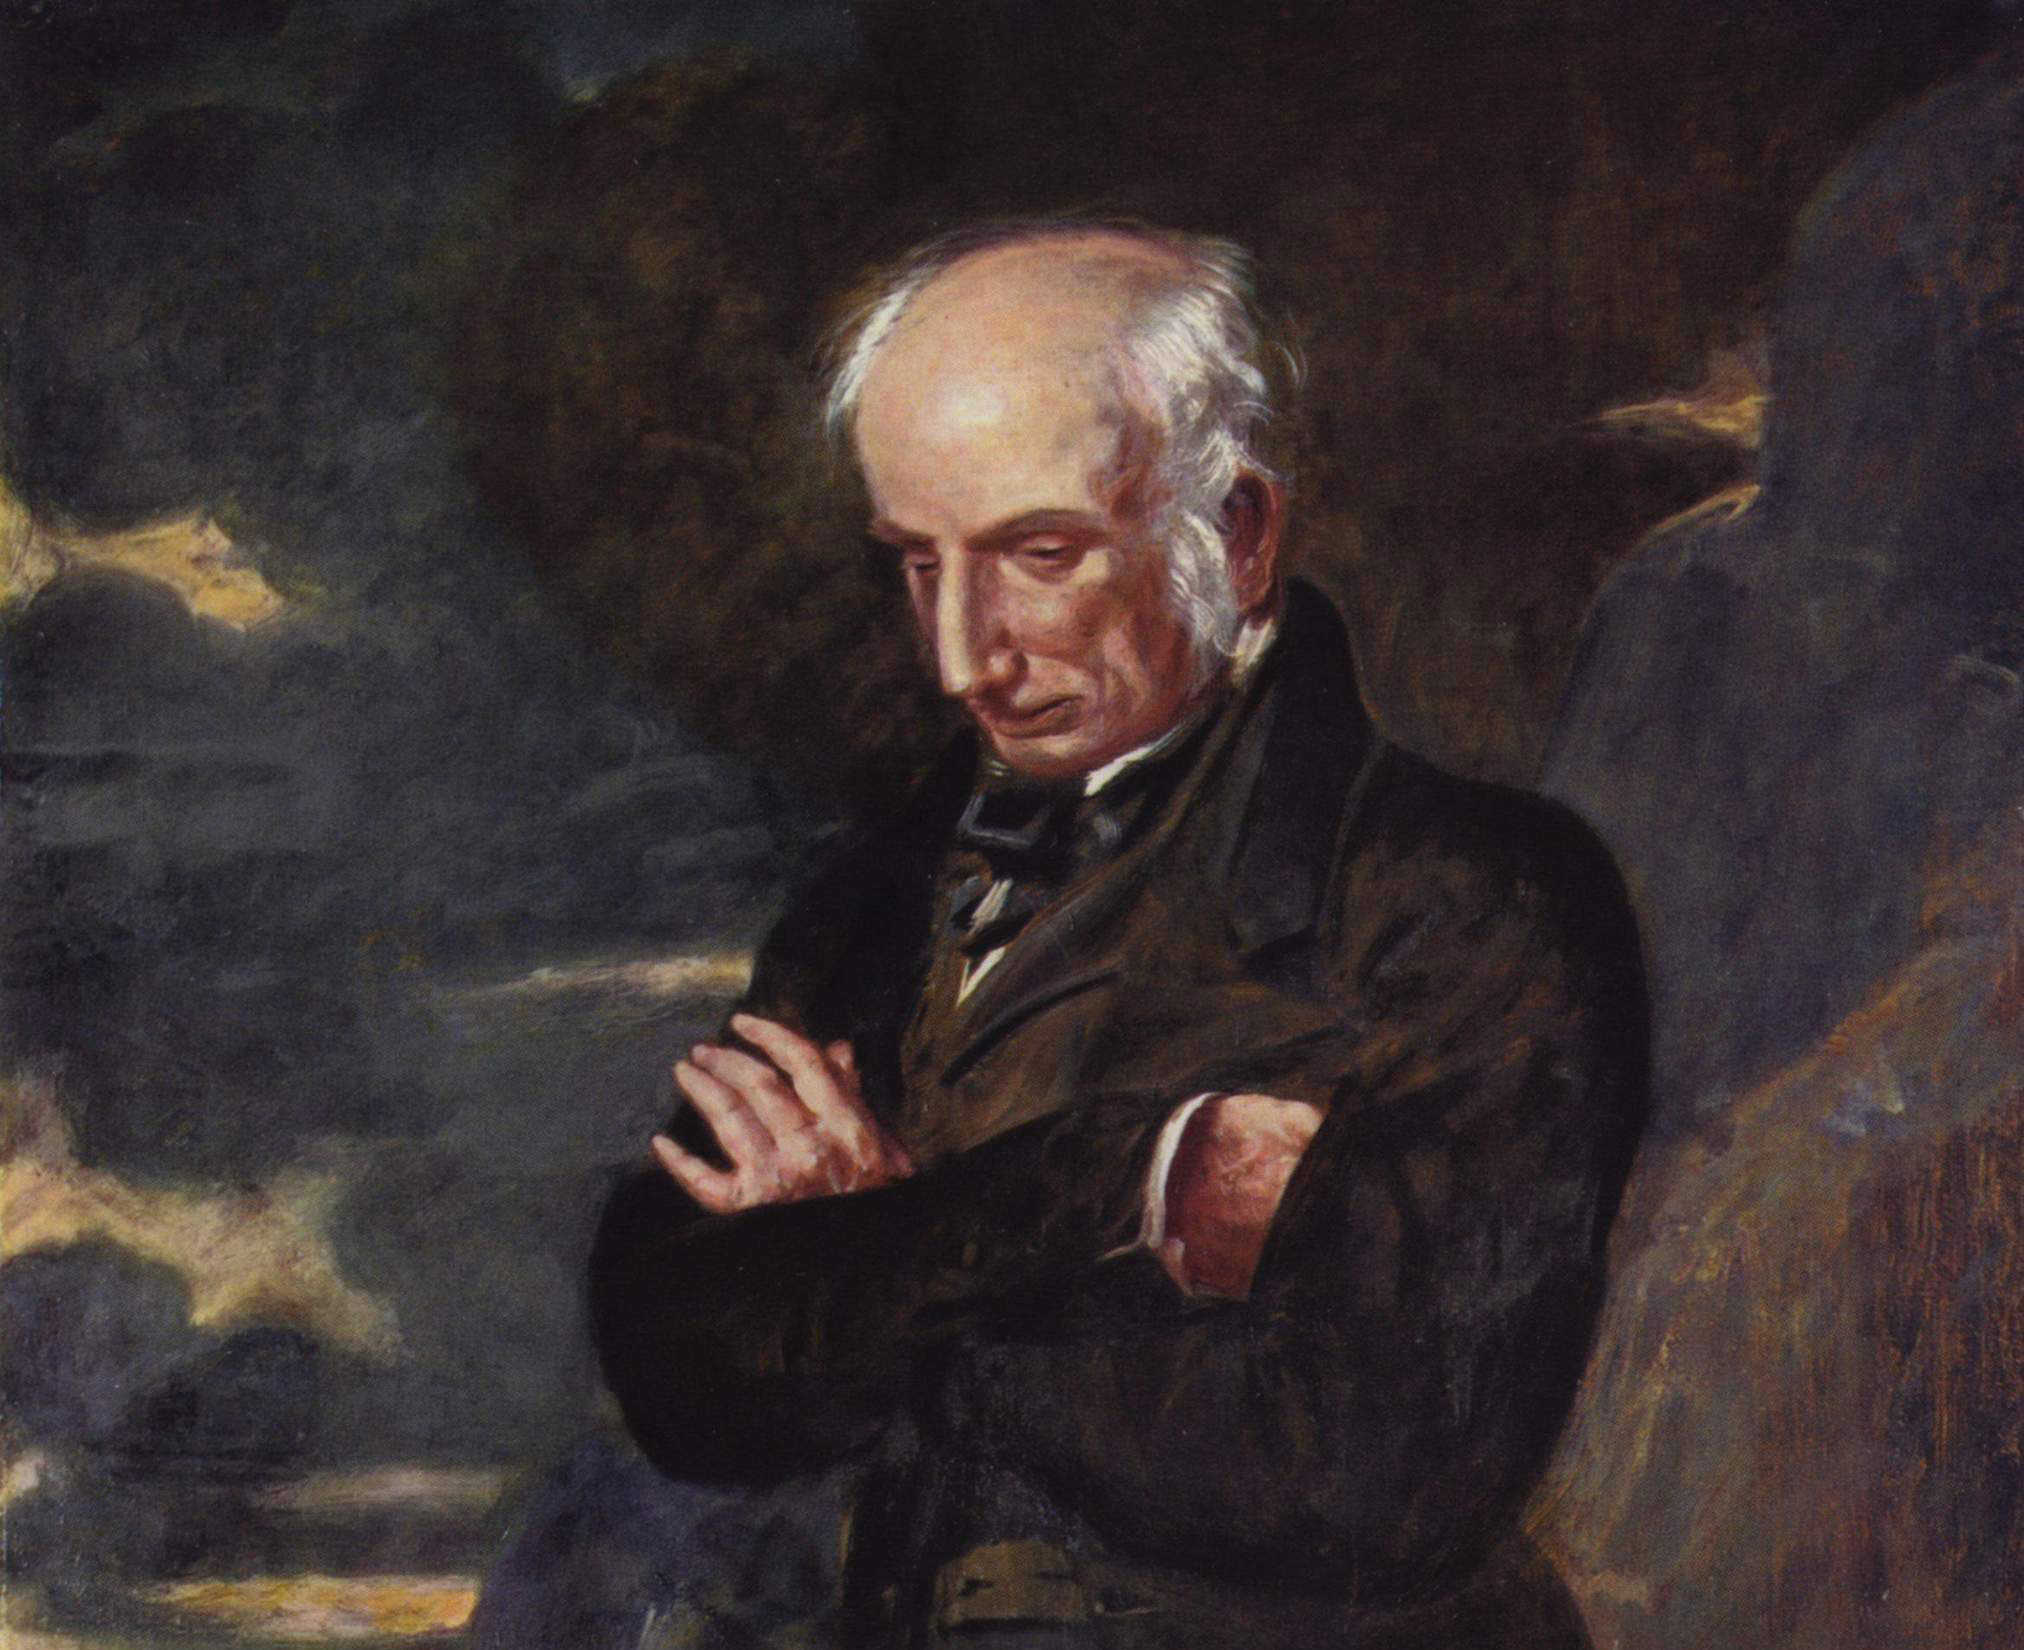 William Wordsworth's picture